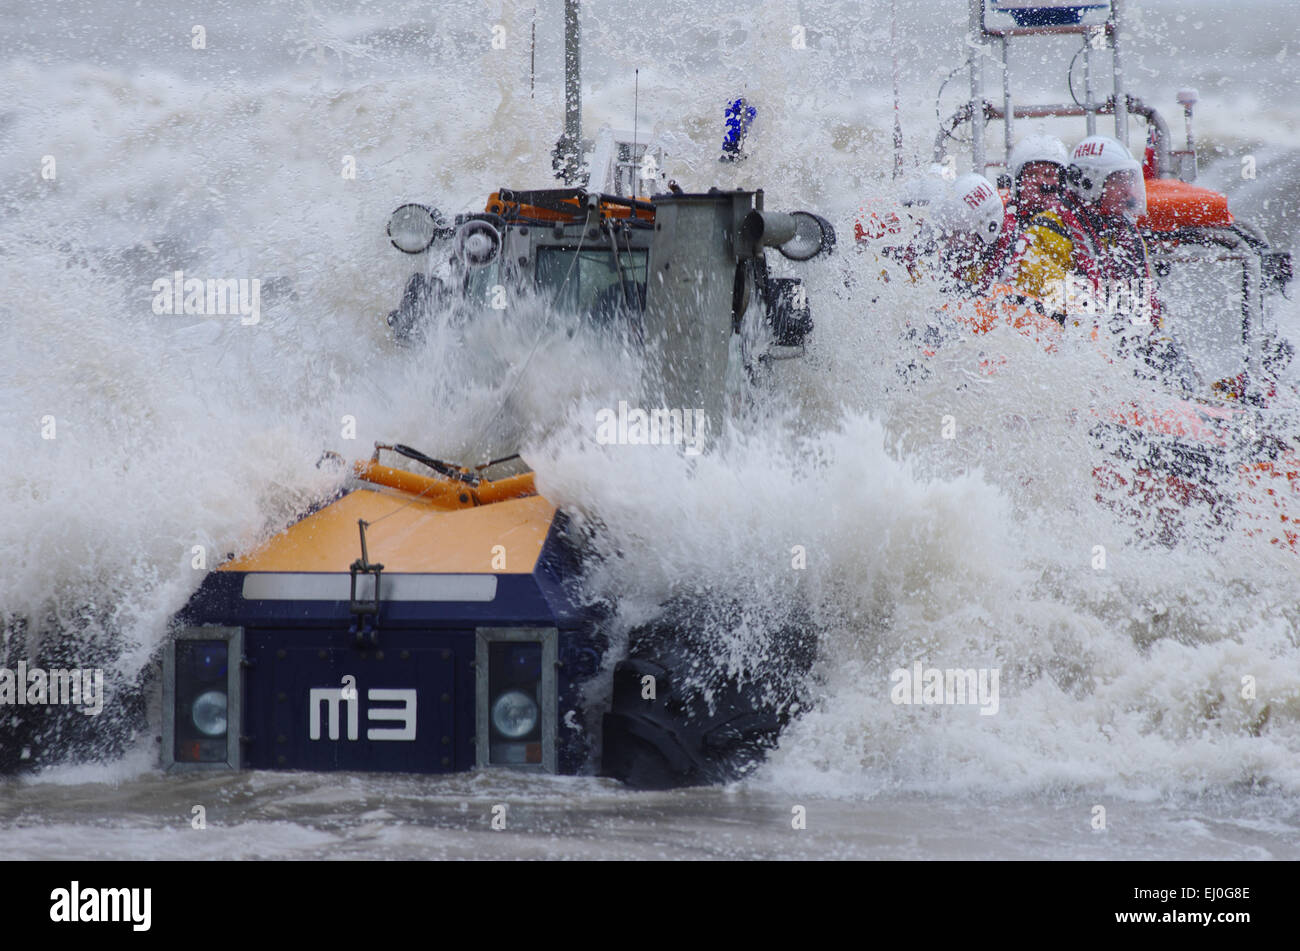 Recovering lifeboat in Stormy sea, Ciccieth, Lleyn Peninsula - Stock Image